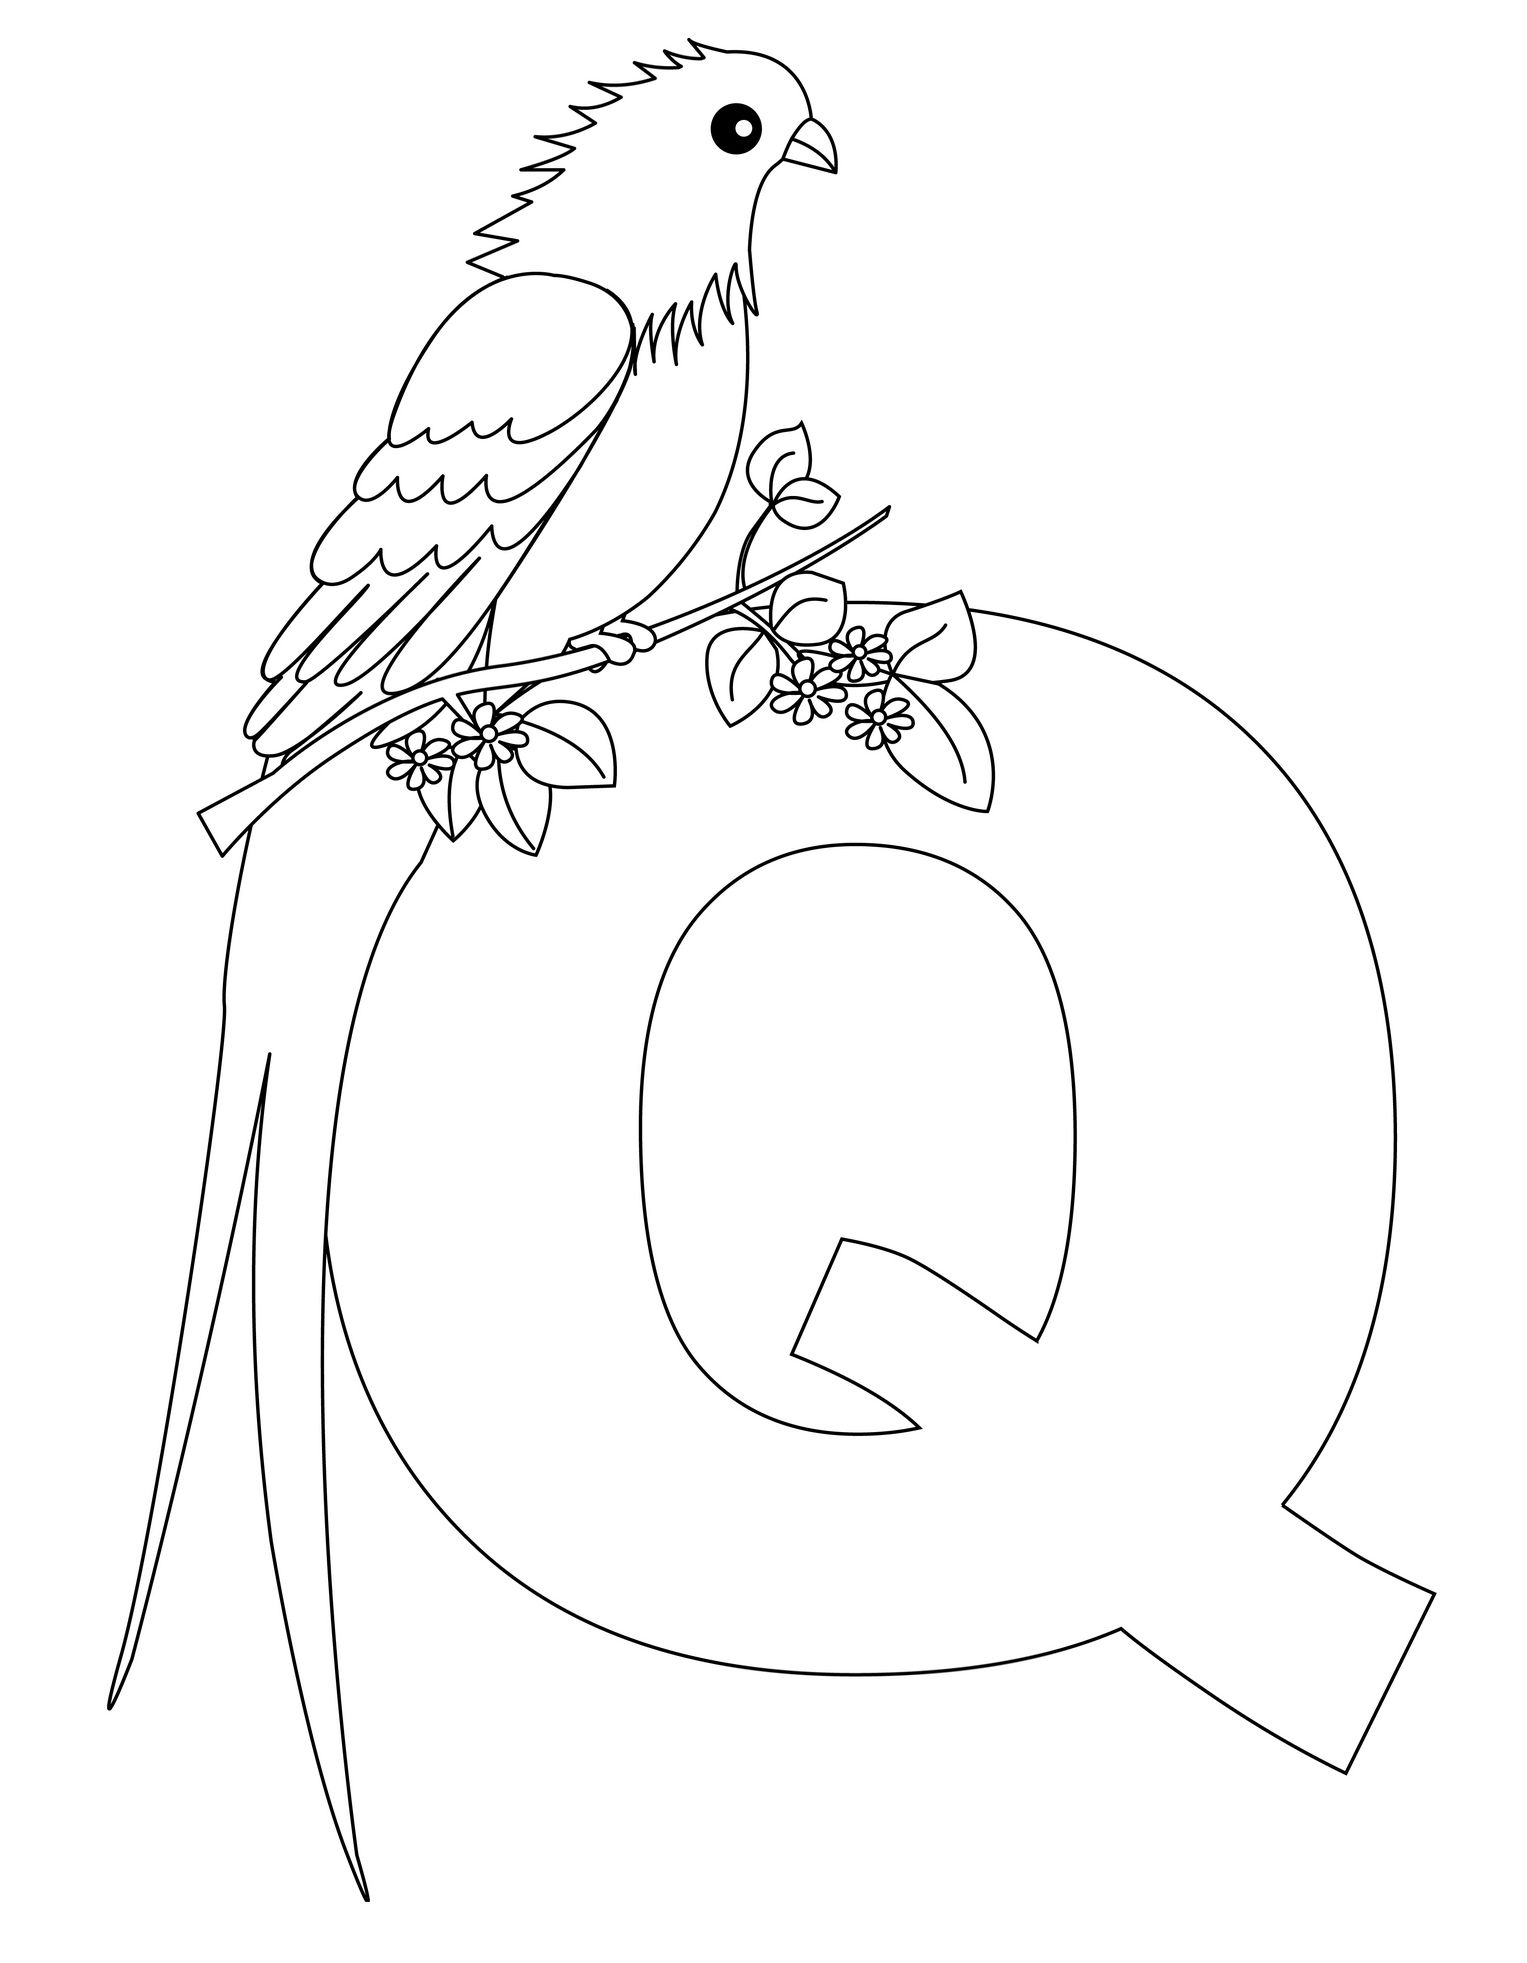 Animal Alphabet Letter Q For Queen Whydah Here S A Simple